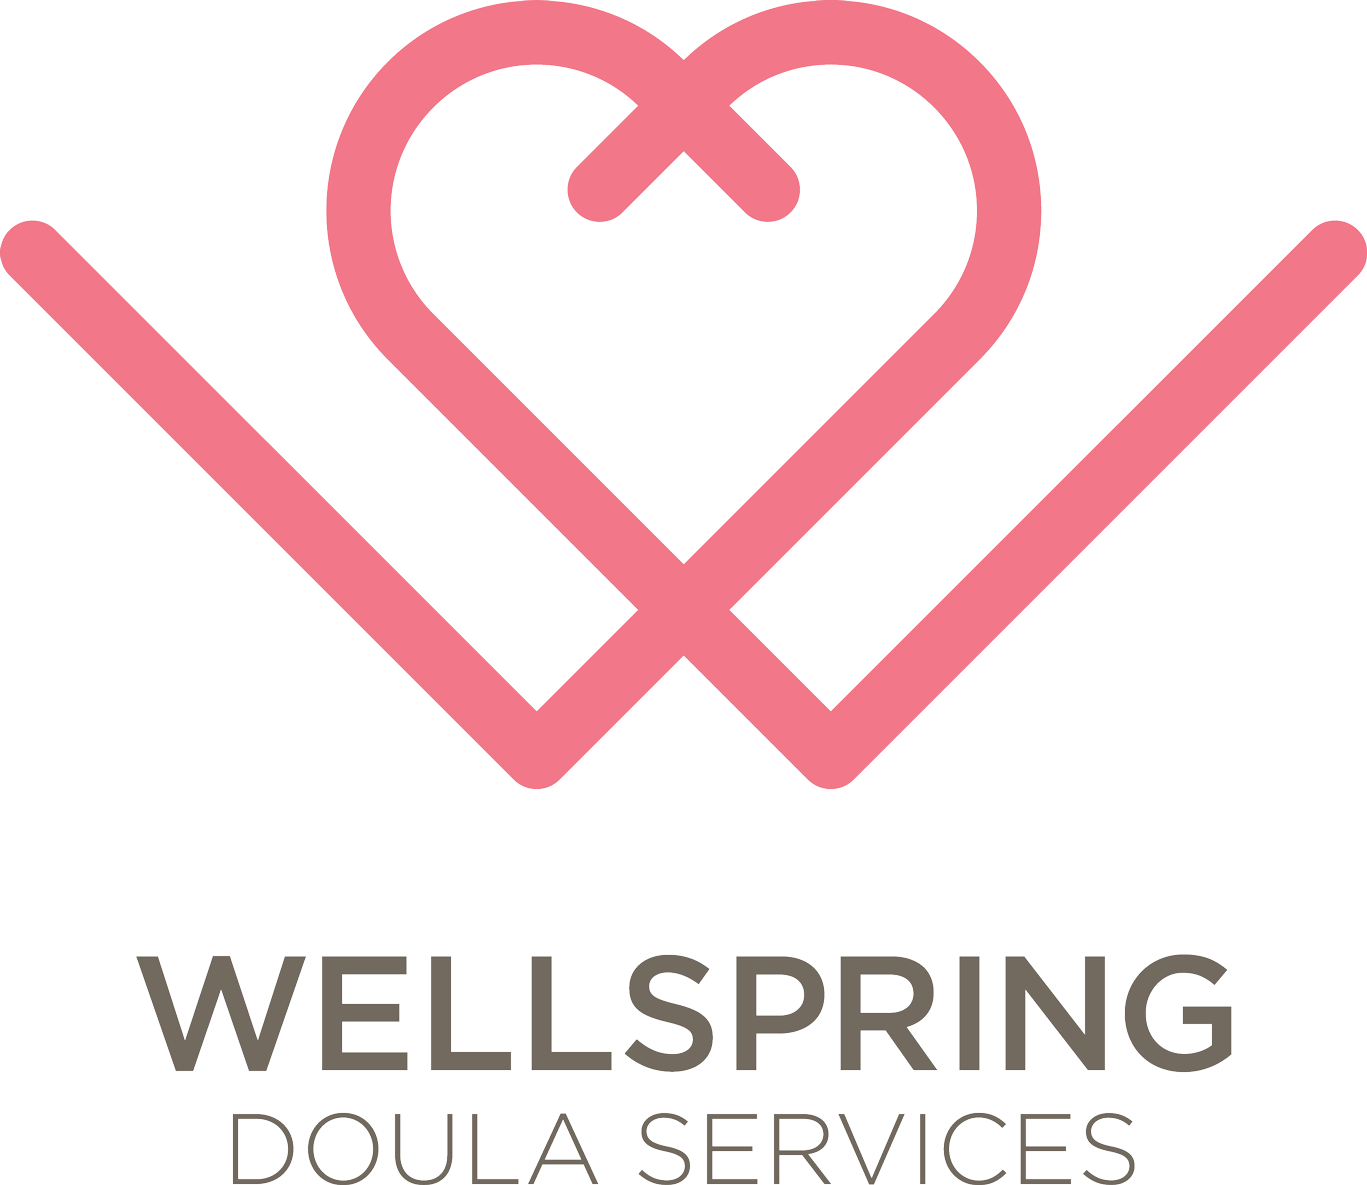 Wellspring Doula Services